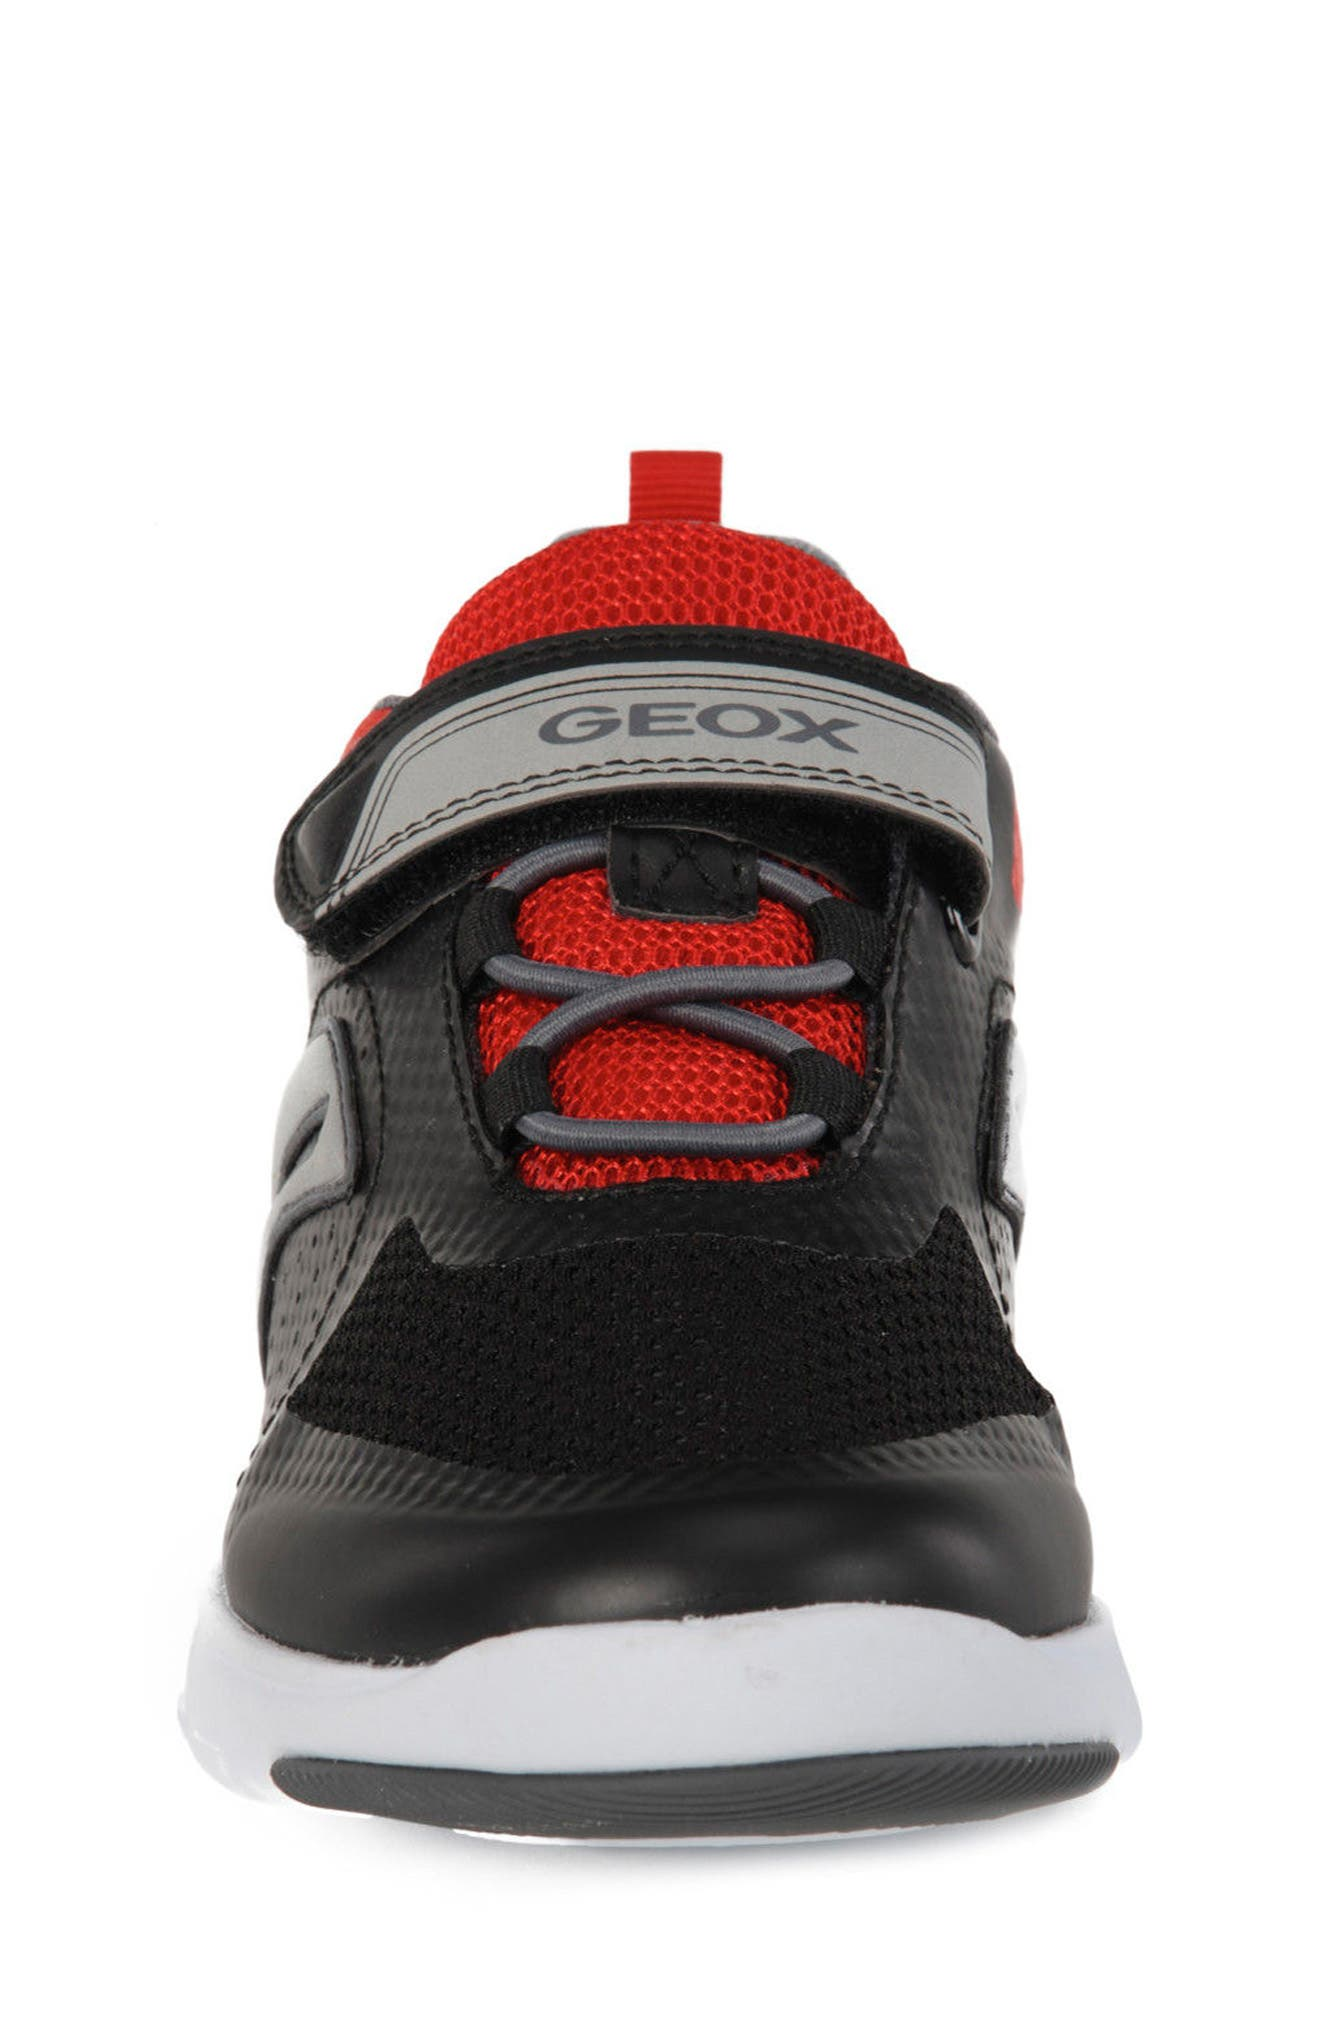 Xunday Low Top Sneaker,                             Alternate thumbnail 4, color,                             Black/ Red